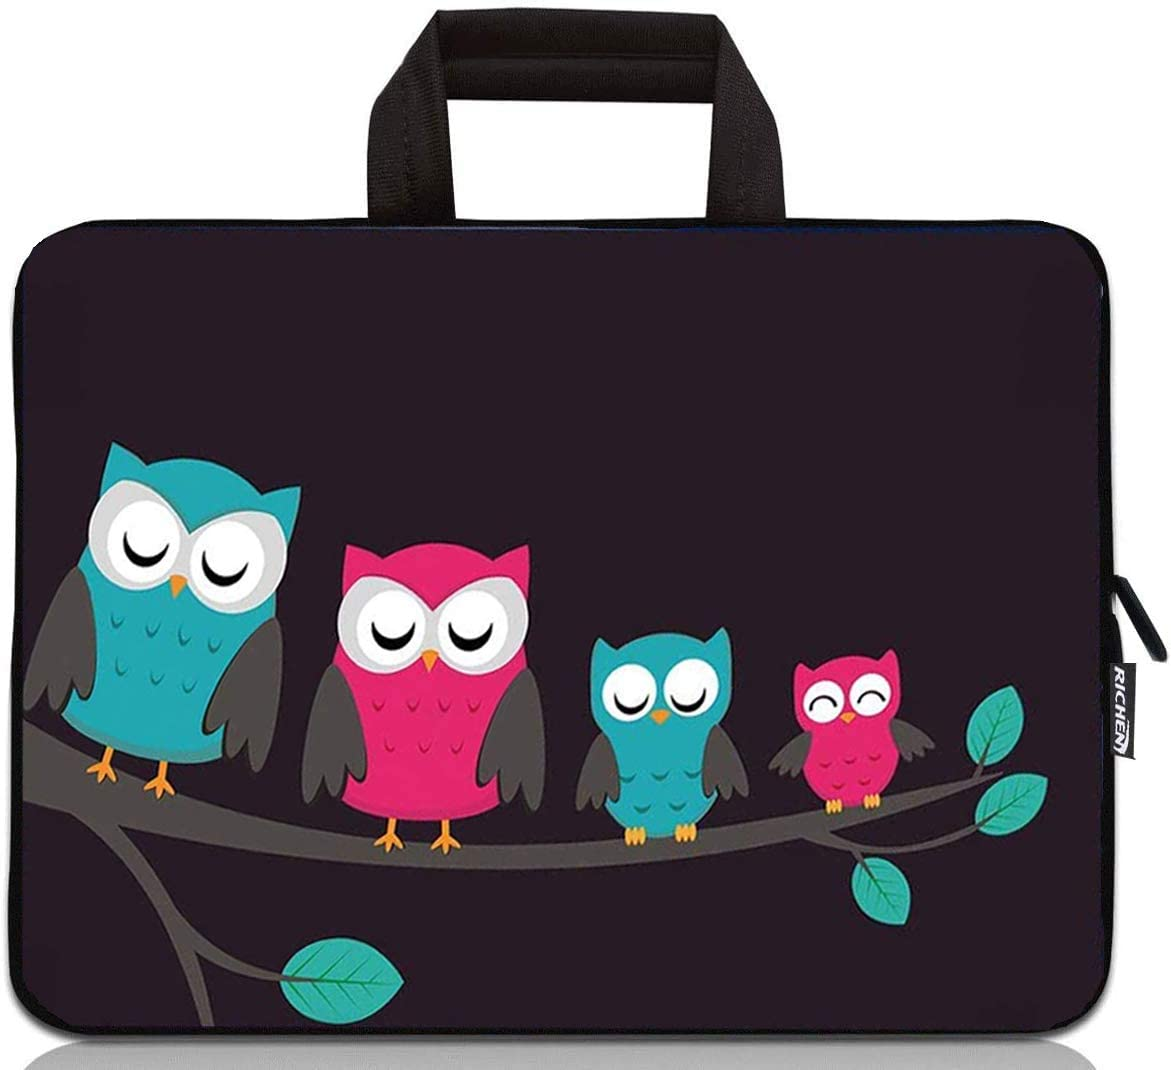 RICHEN 12 inch Neoprene Laptop Carrying Bag Chromebook Case Tablet Travel Cover with Handle Zipper Carrying Sleeve Case Bag Fits 11 11.6 12 12.1 12.5 inch Netbook/Laptop (11-12.5 inch, Cute Owls)